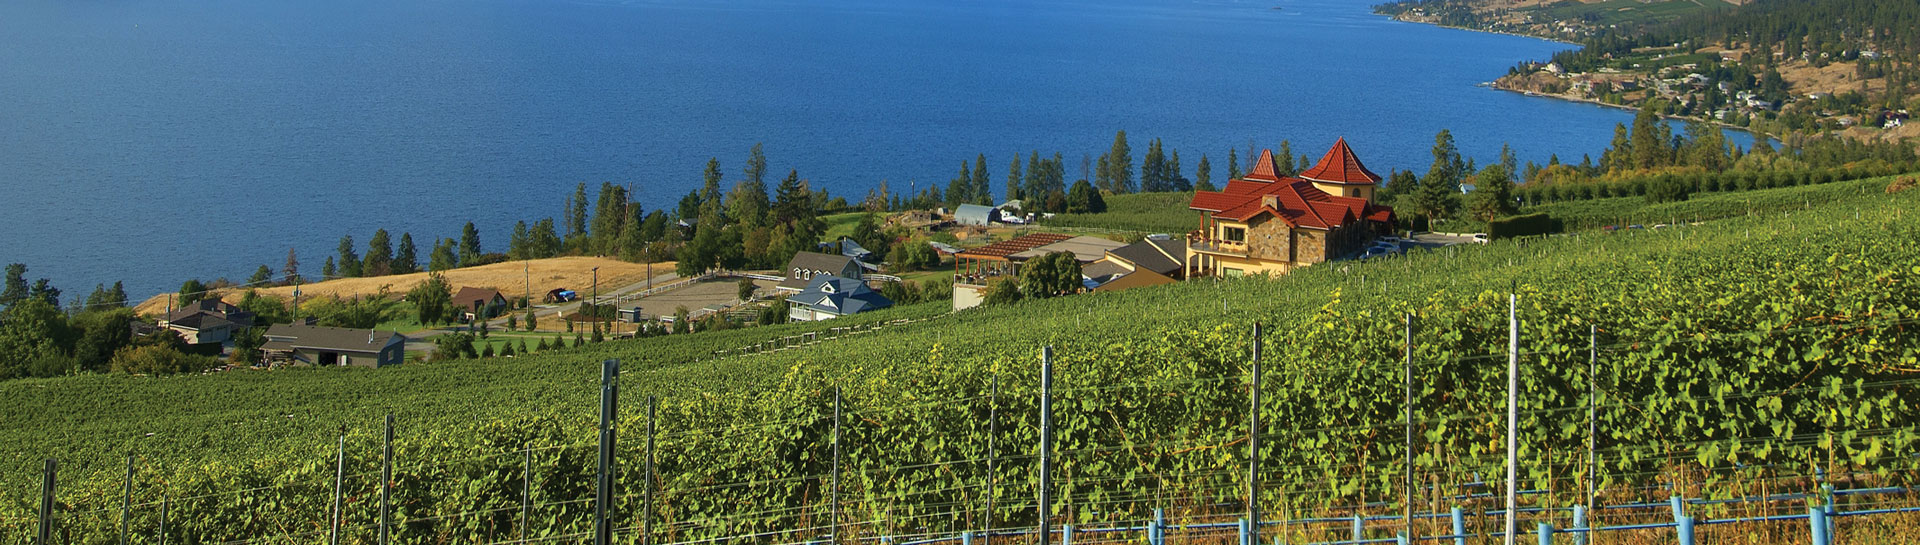 Okanagan Vernon BC Wineries